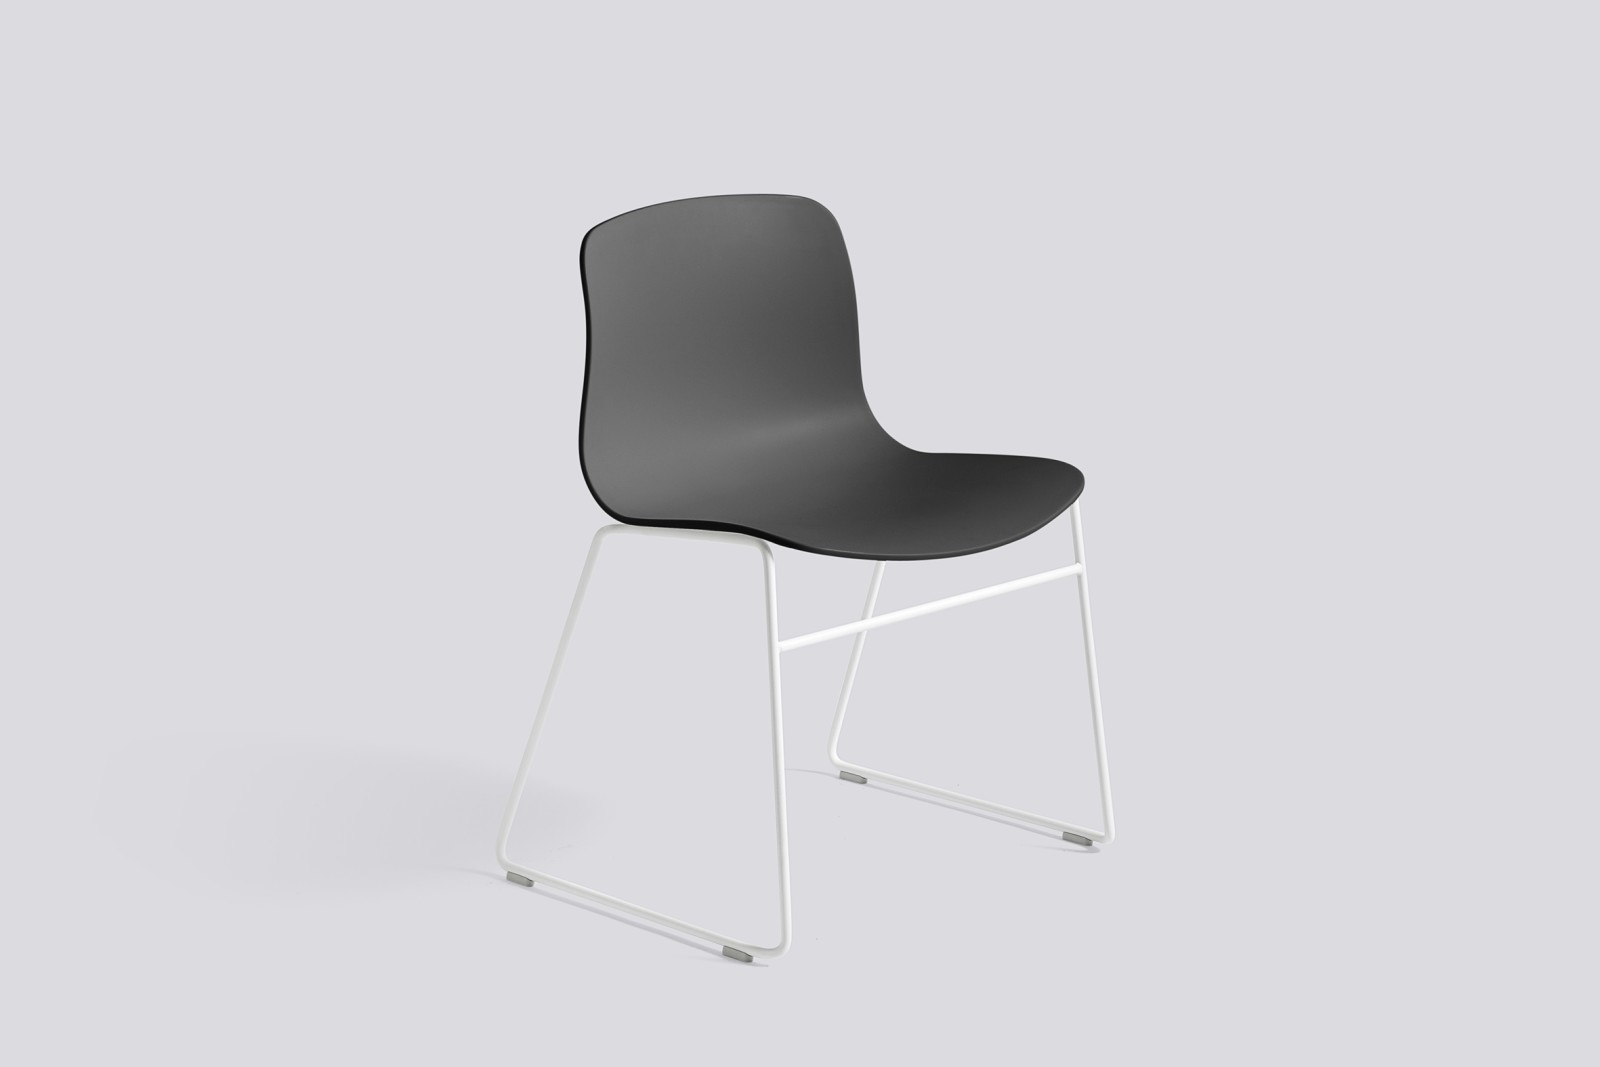 About A Chair AAC08 Soft Black Seat and White Base